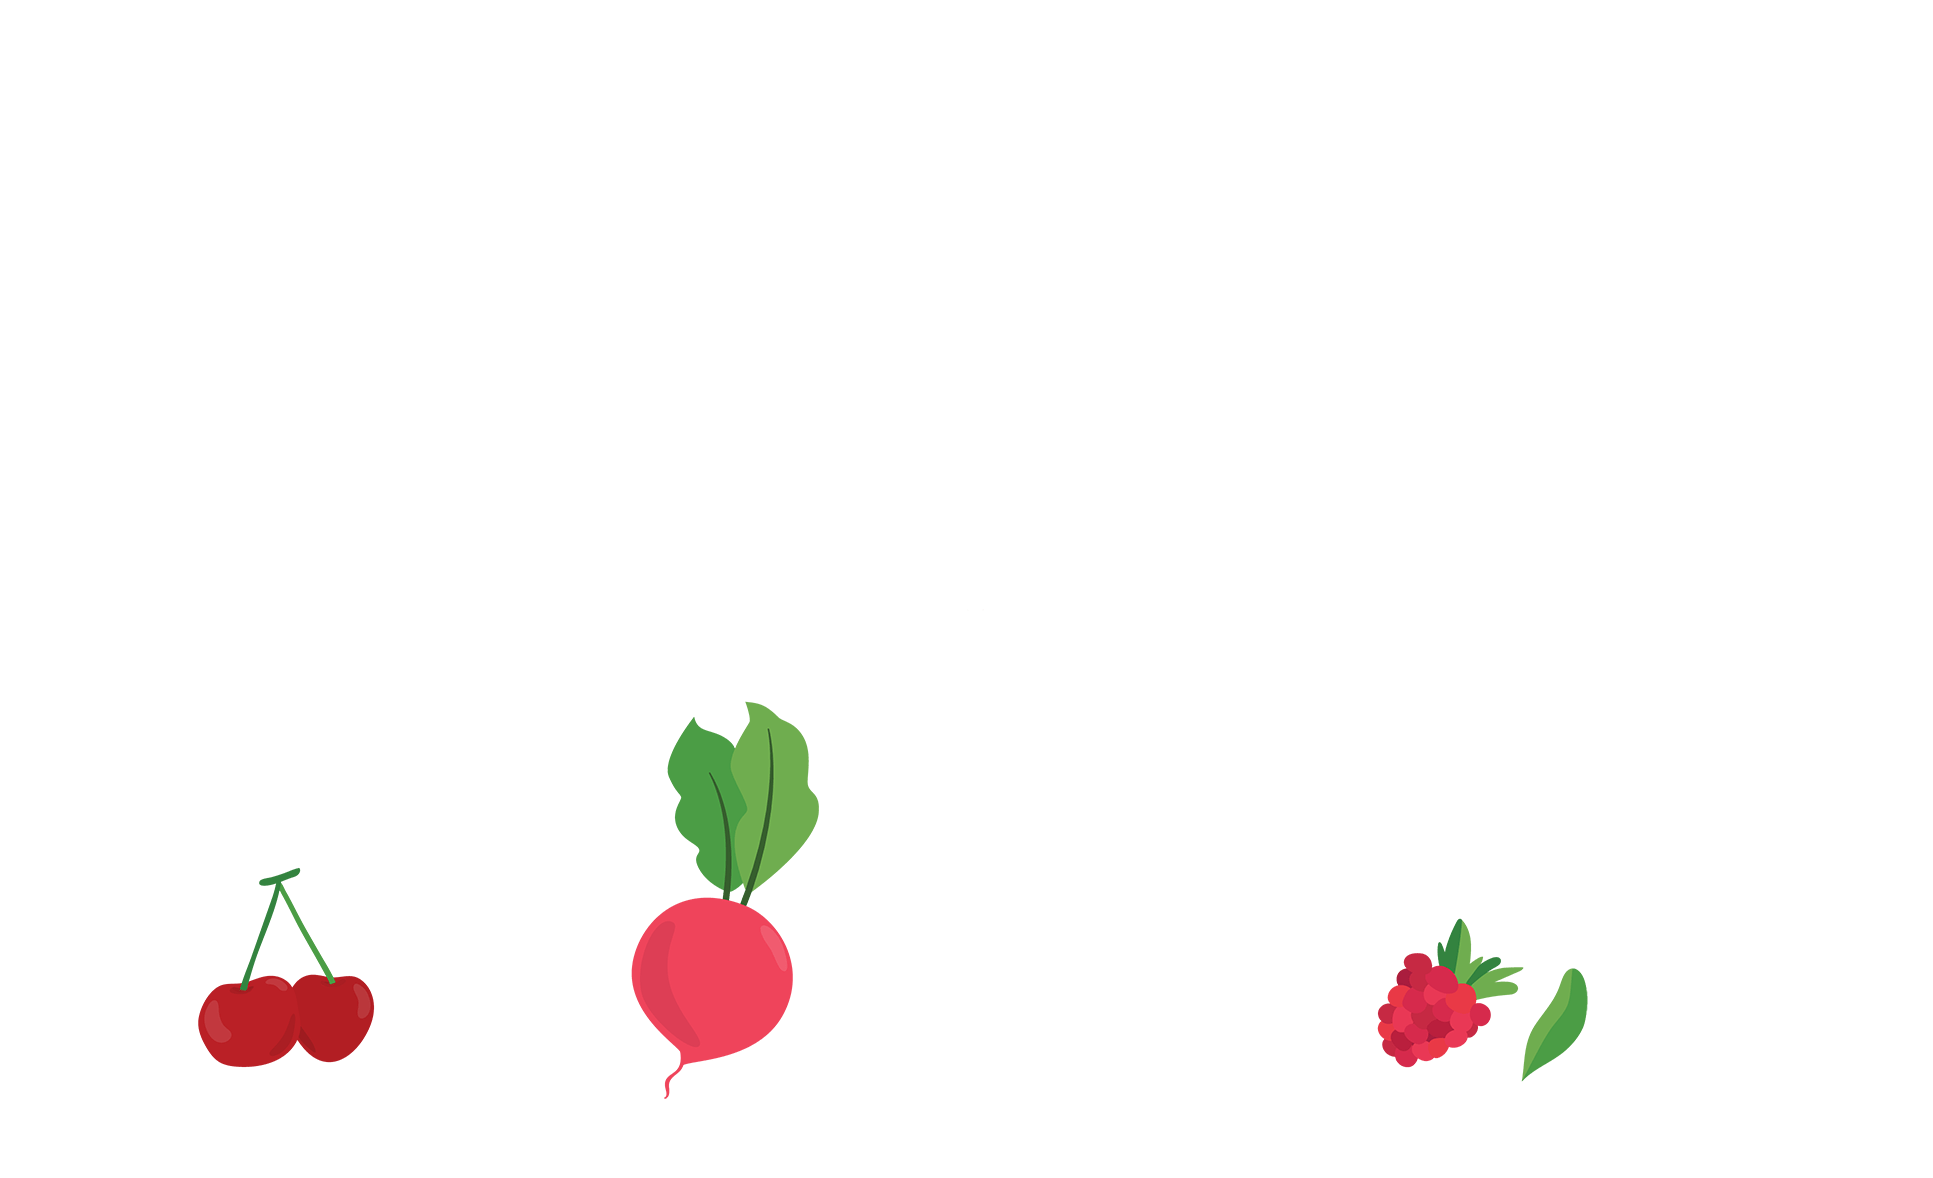 Cherries, radishes, and berries